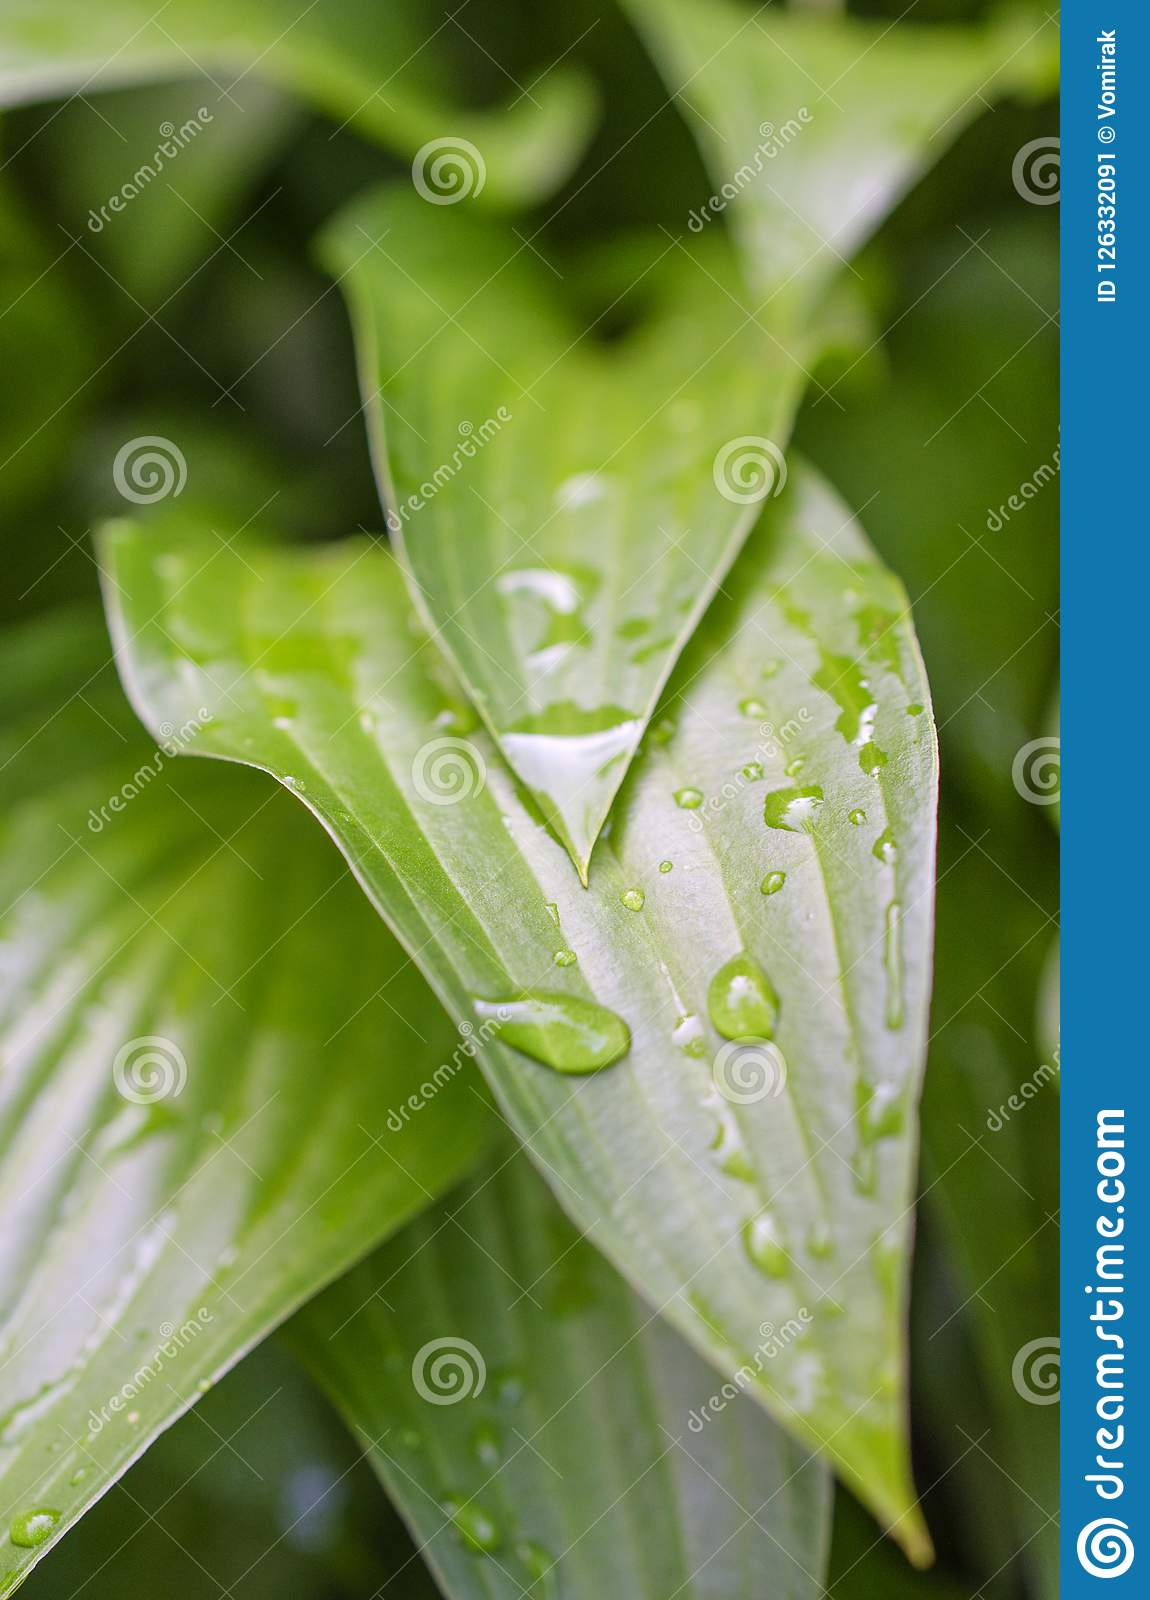 Picturesque bright green garden plant Host after the rain